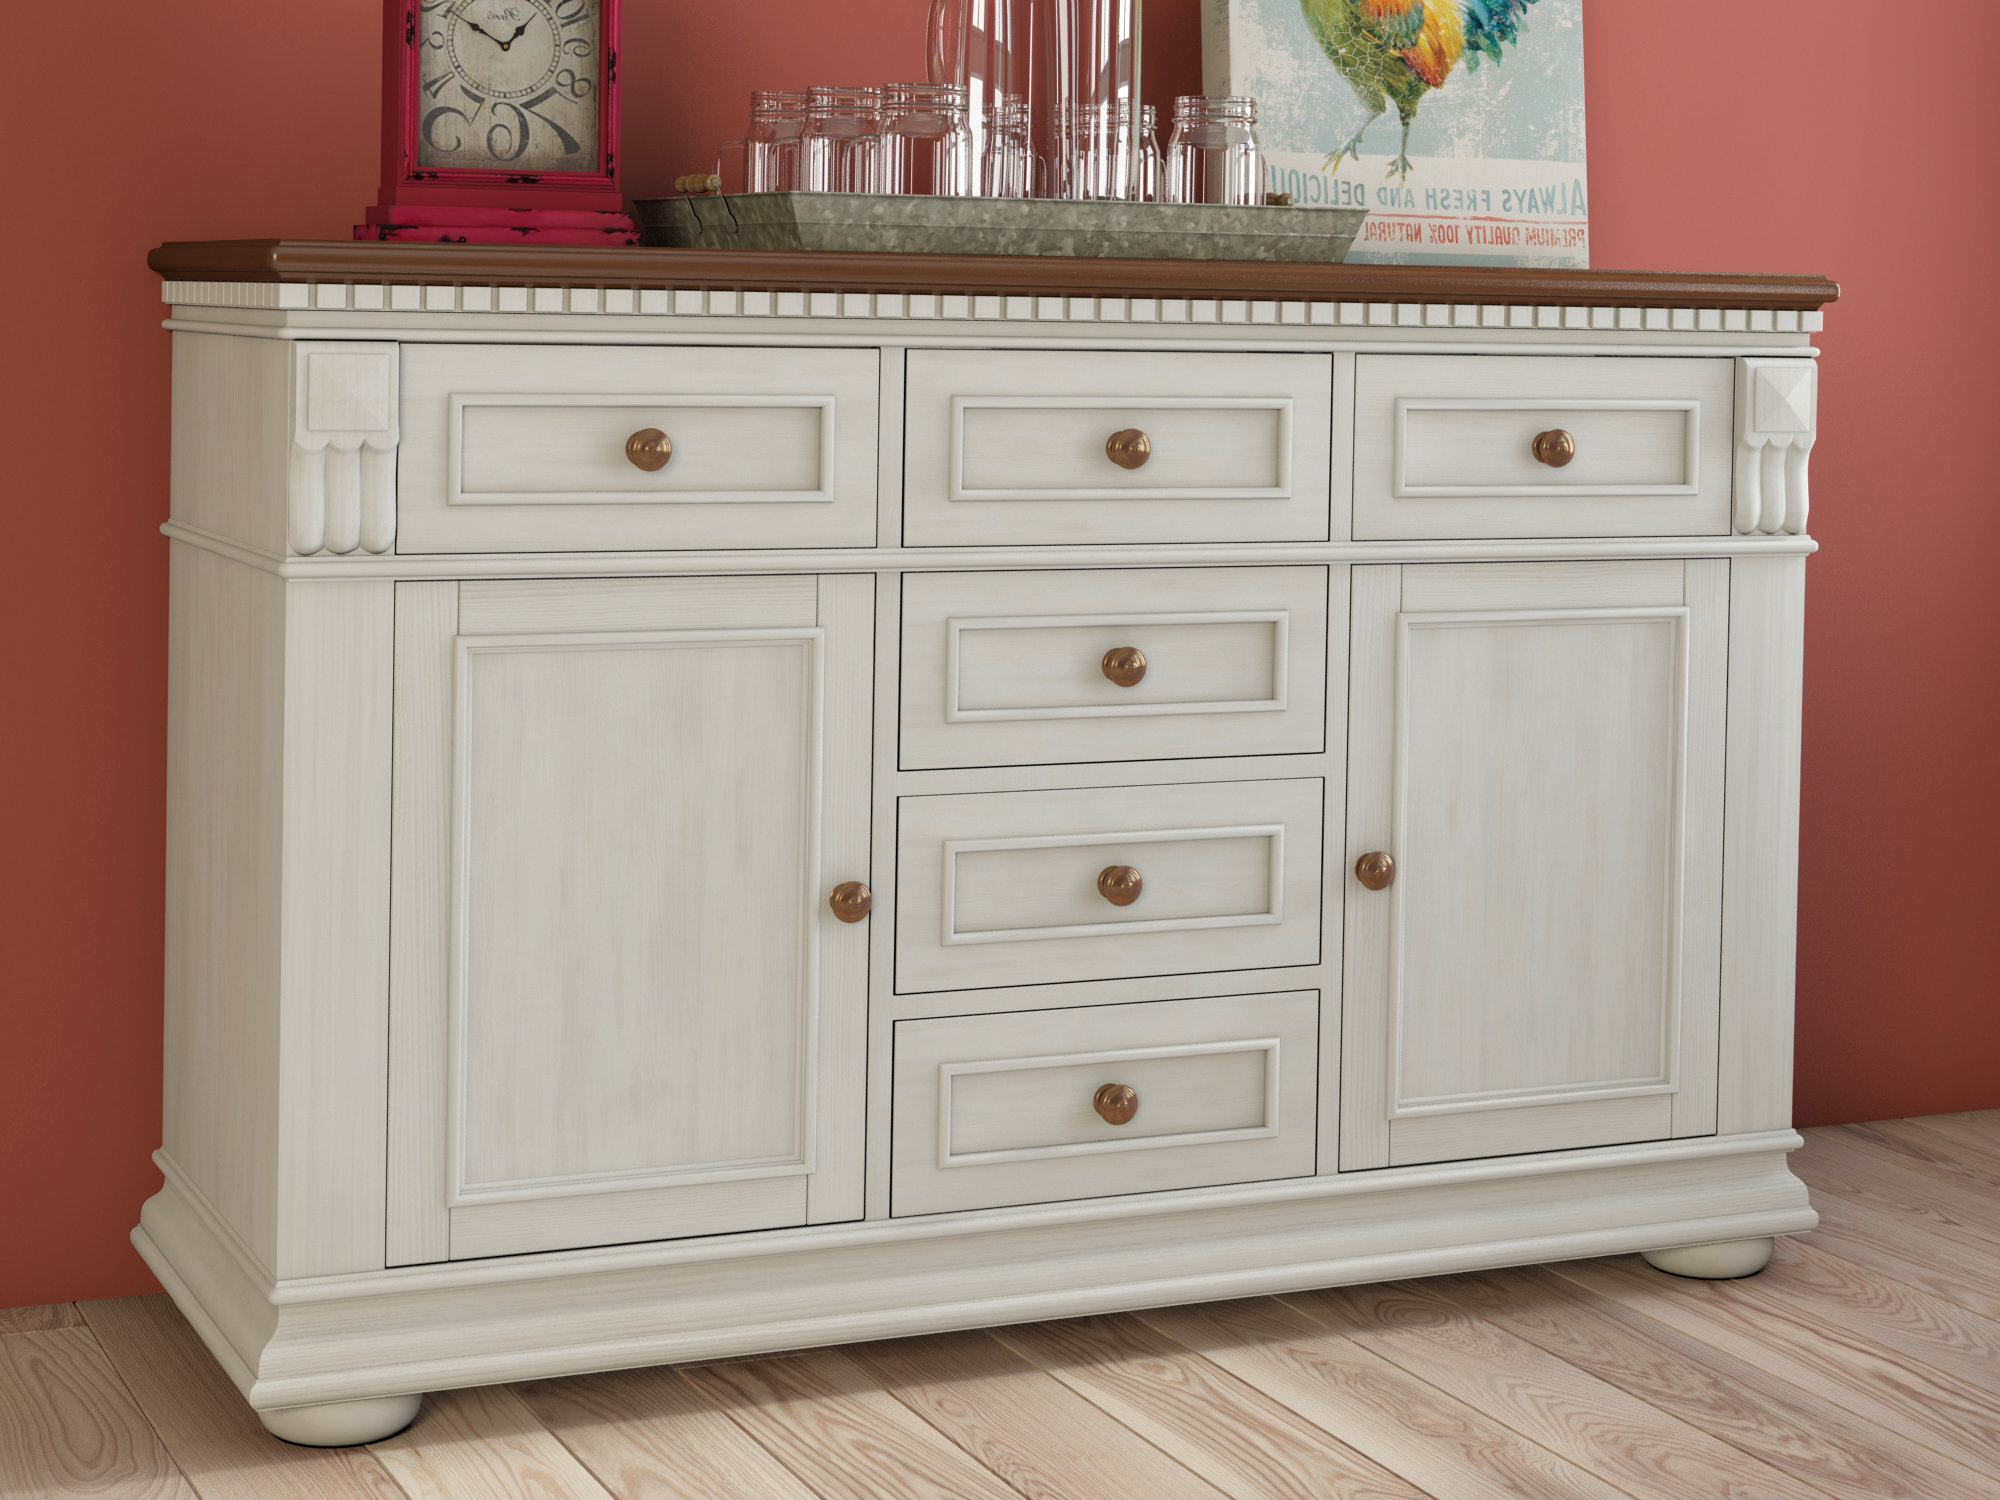 Farmhouse & Rustic Darby Home Co Sideboards & Buffets Throughout Newest Tilman Sideboards (Gallery 20 of 20)